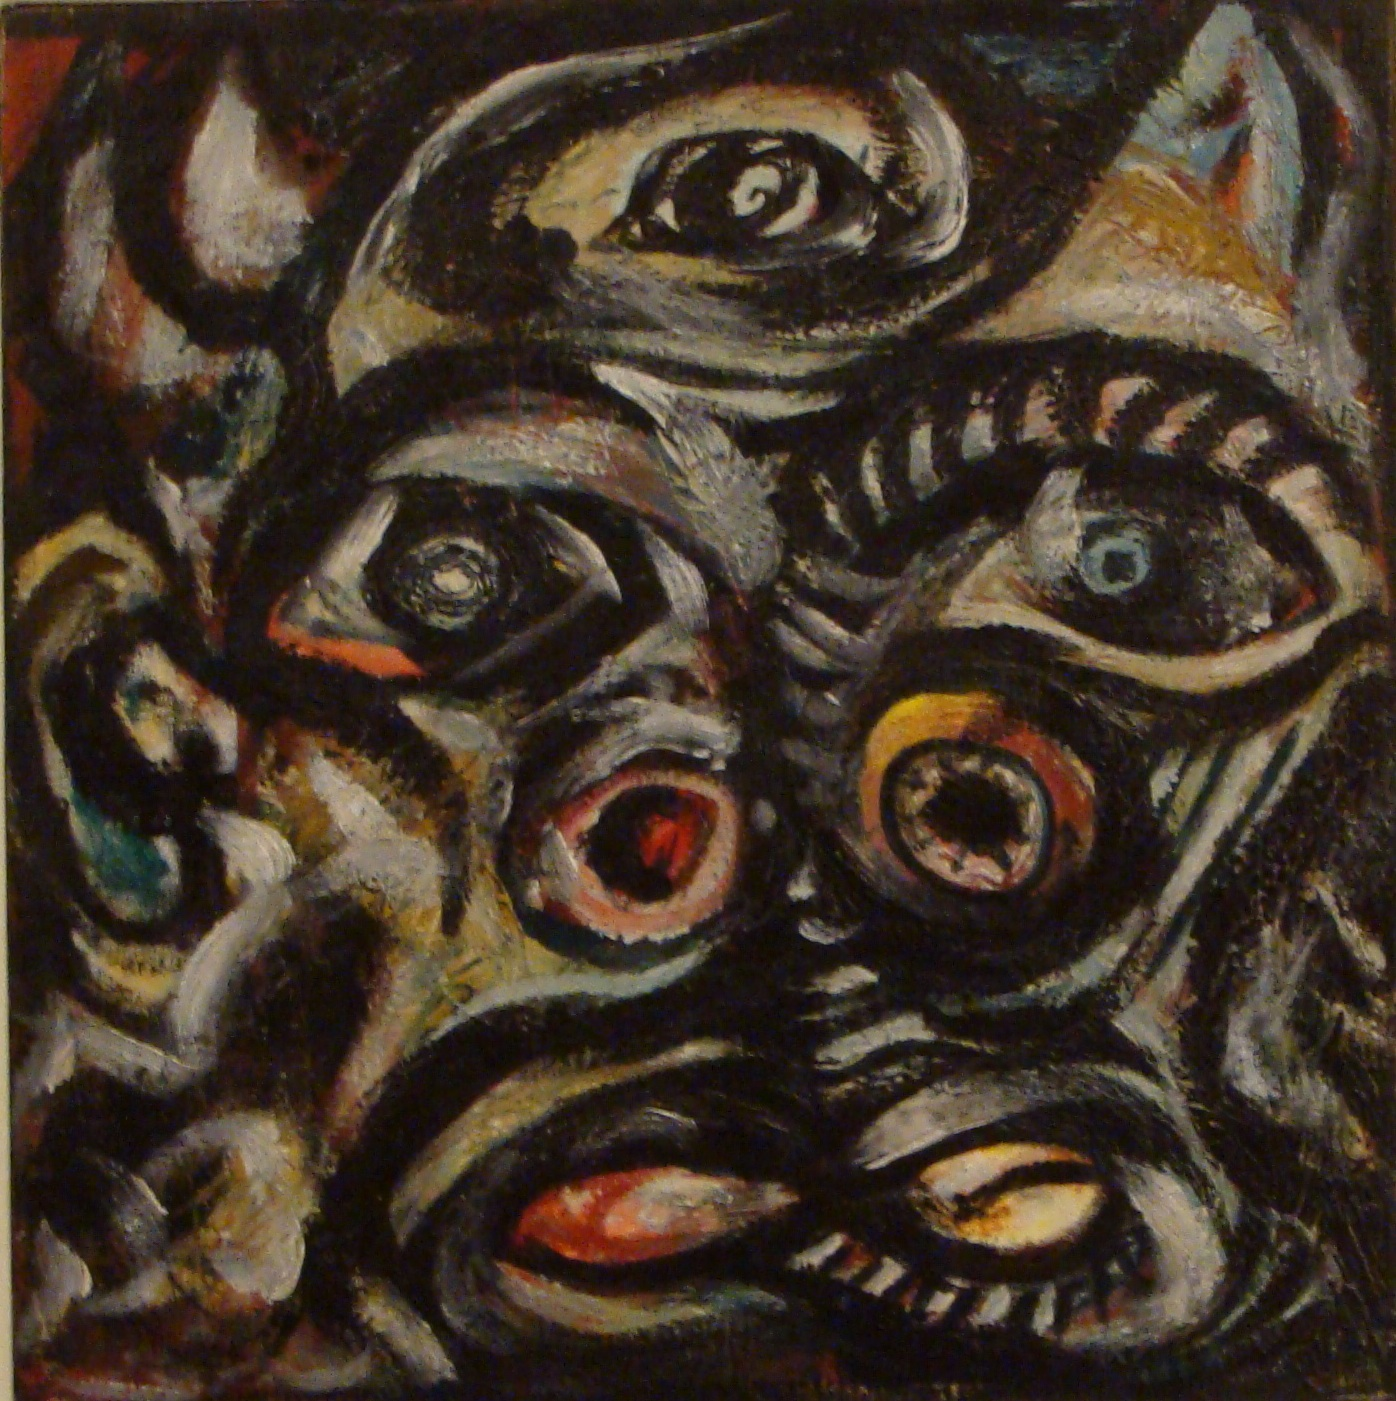 jackson pollock essays When most people ask what do jackson pollock's paintings really mean, they are probably most focused on his drip paintings of the late 1940s but if you look at the paintings that jackson pollock did in the 1930s, they look something more l.